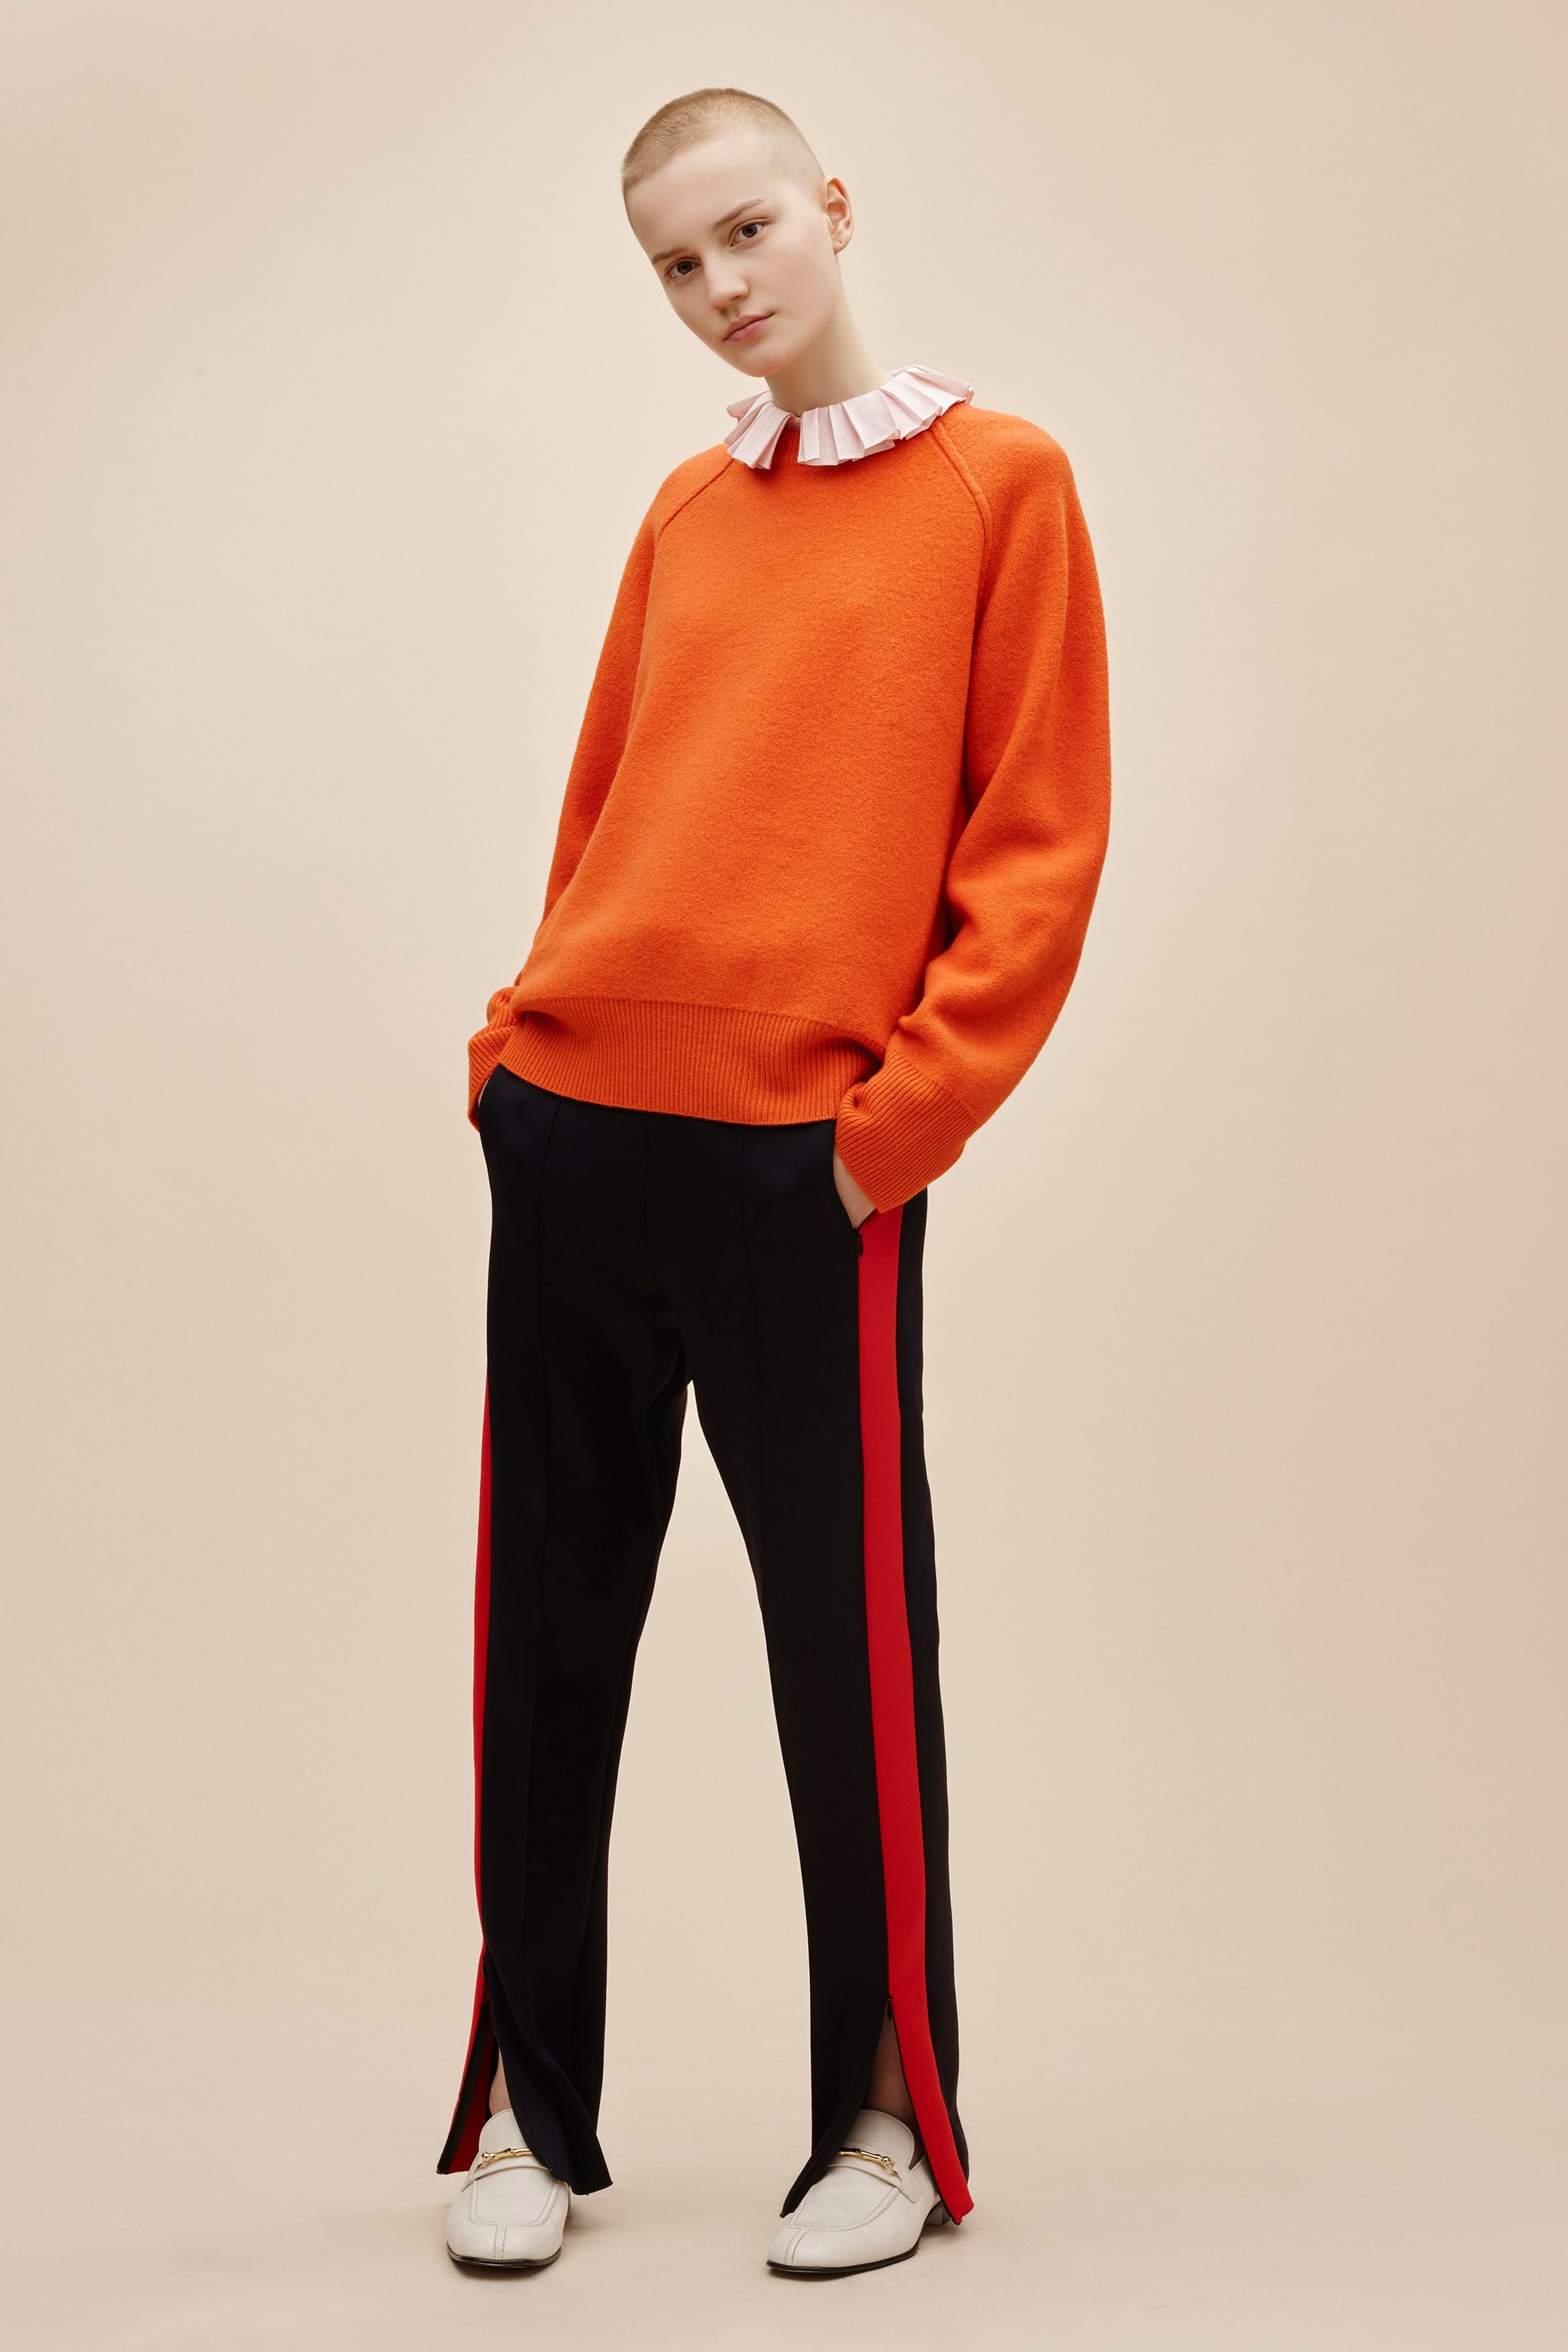 joseph-pre-fall-2016-lookbook-36.jpg